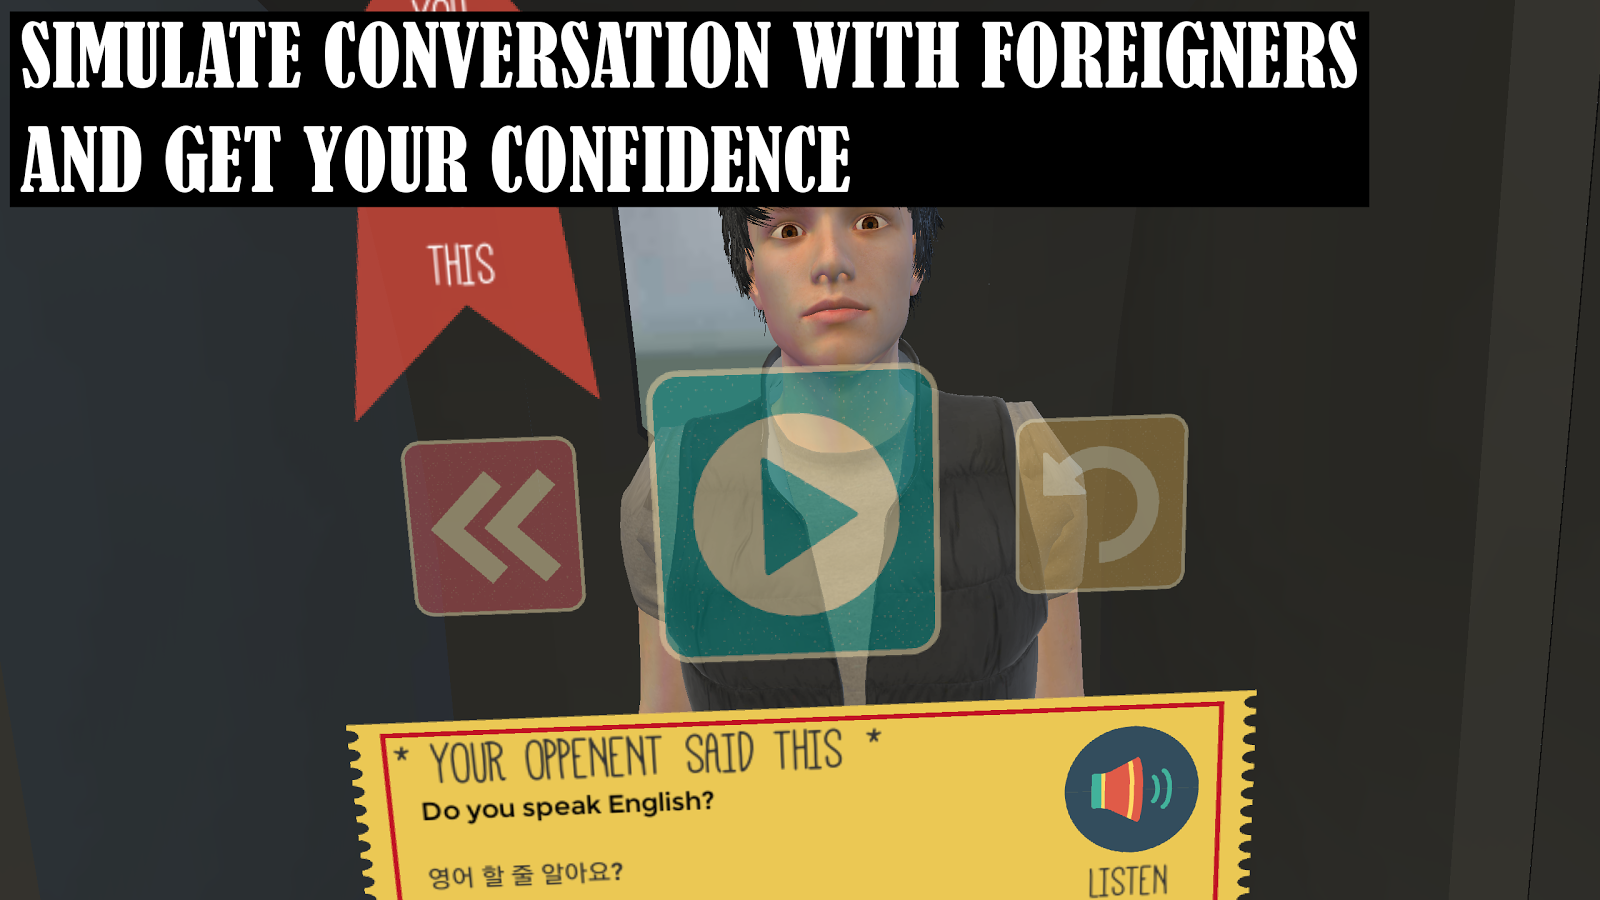 app to talk to foreigners